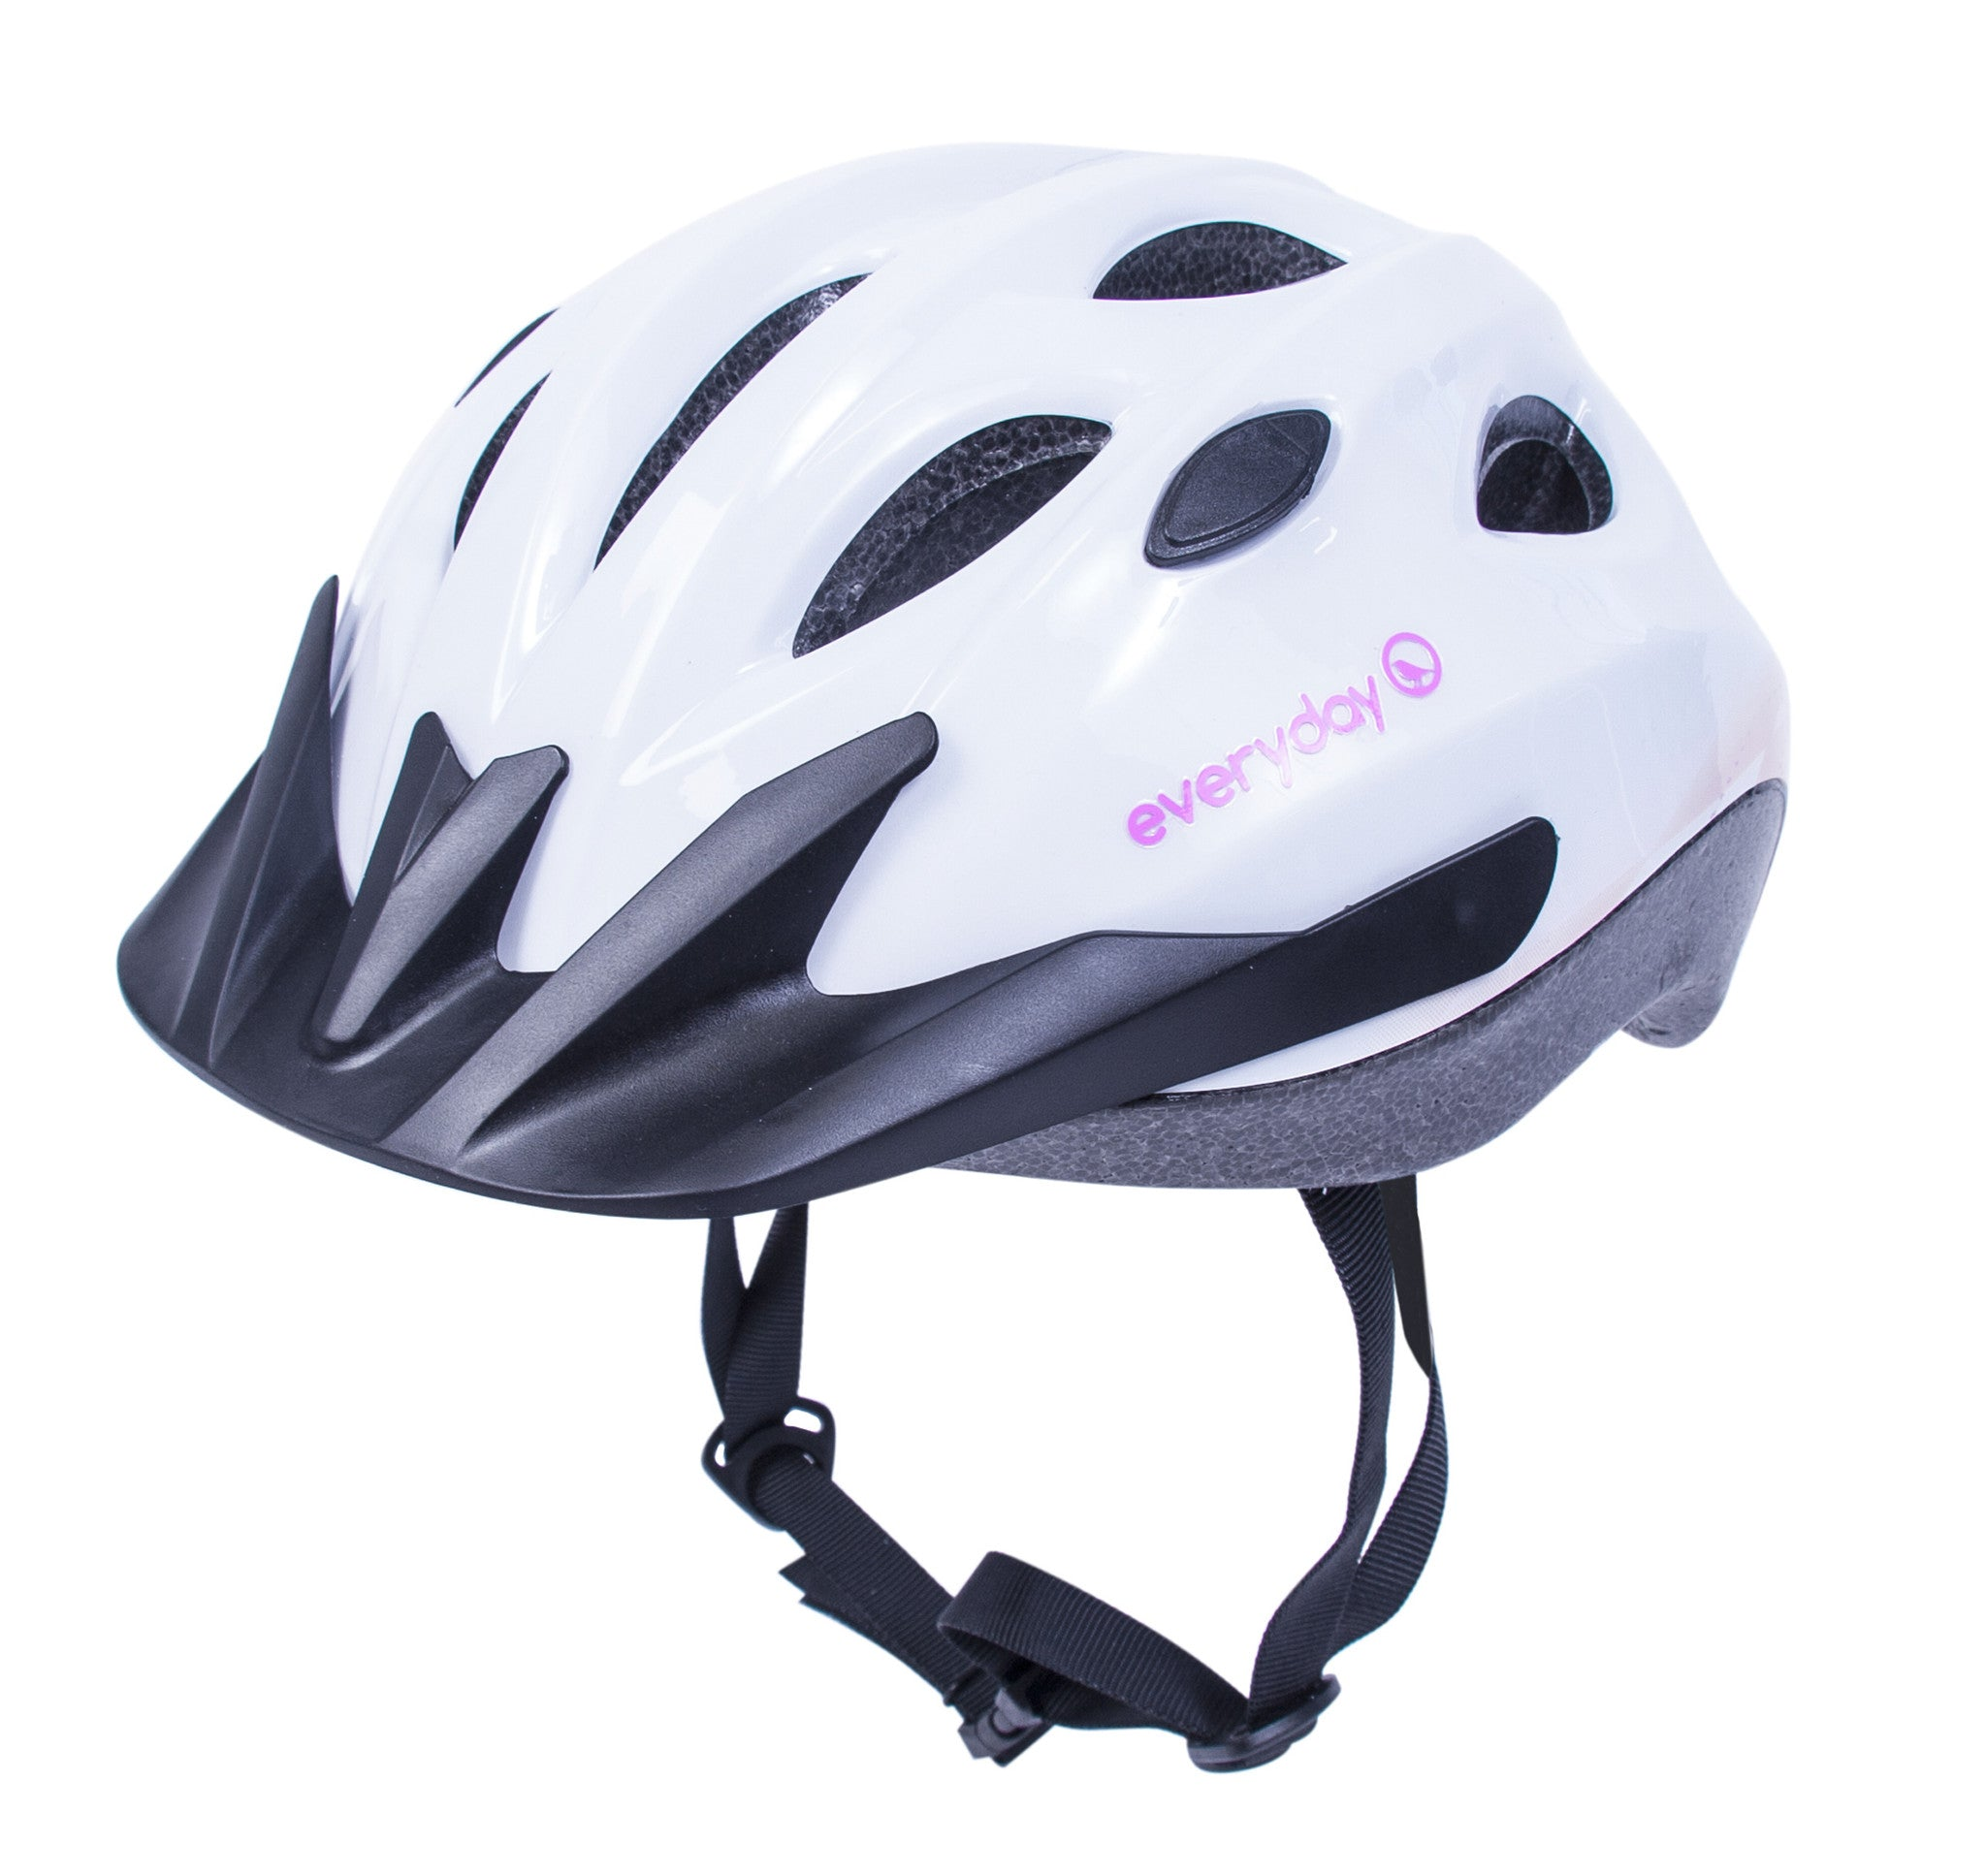 Helmet, Womens M/L (Size 58-62cm) (SOLD OUT)